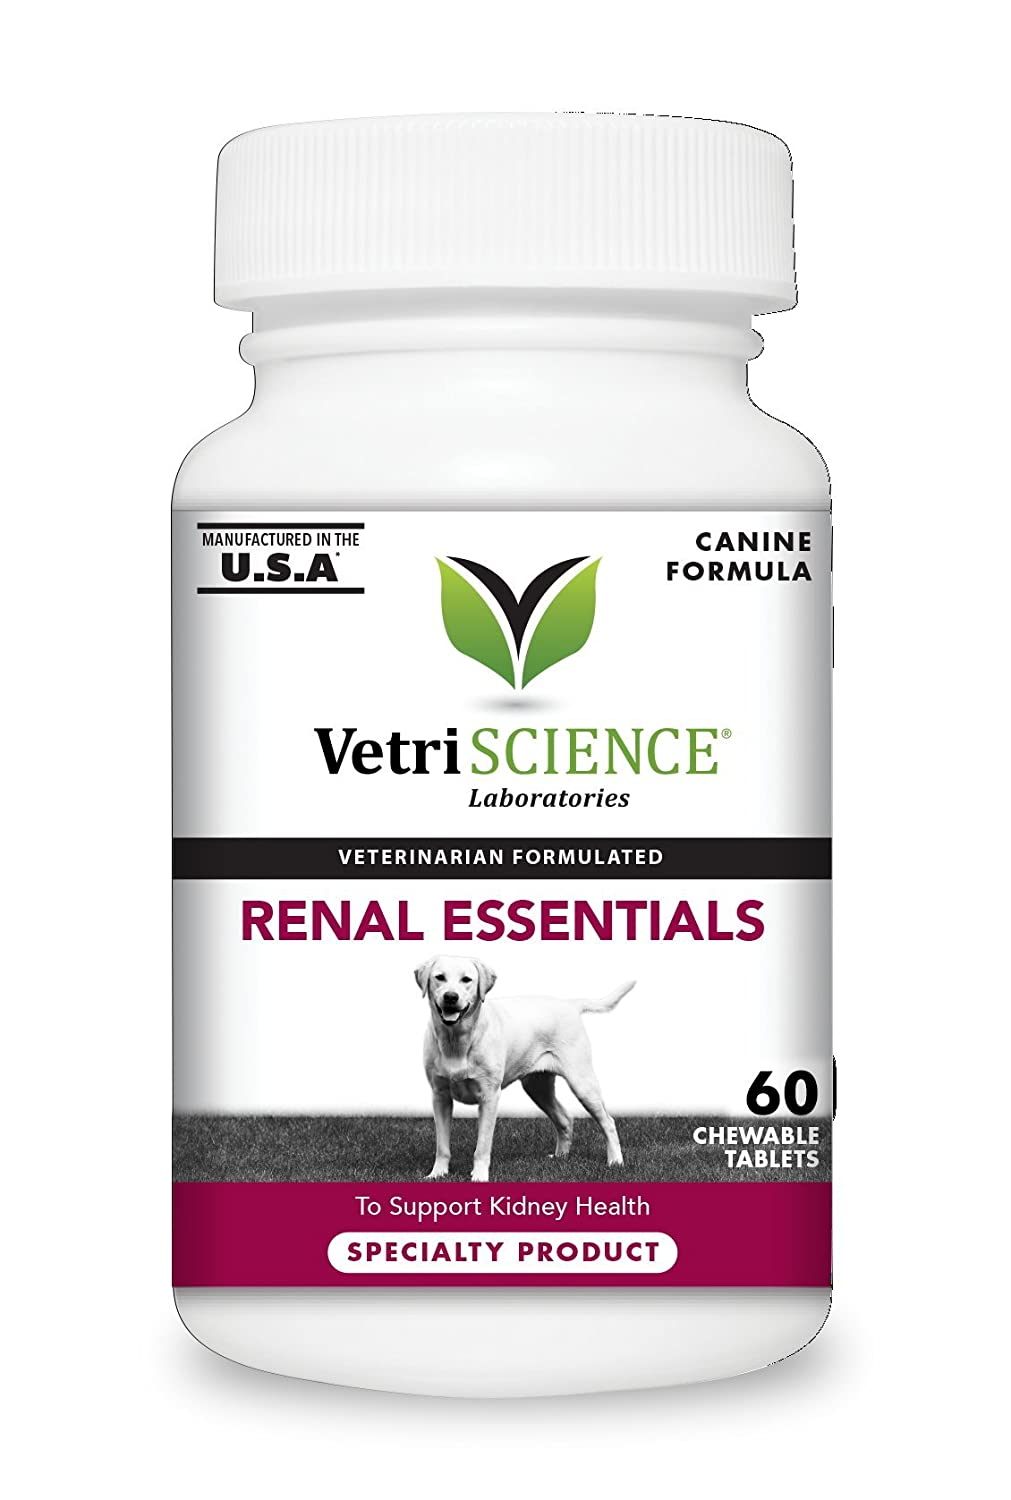 Vetri-Science Renal Essentials Dog Supplement